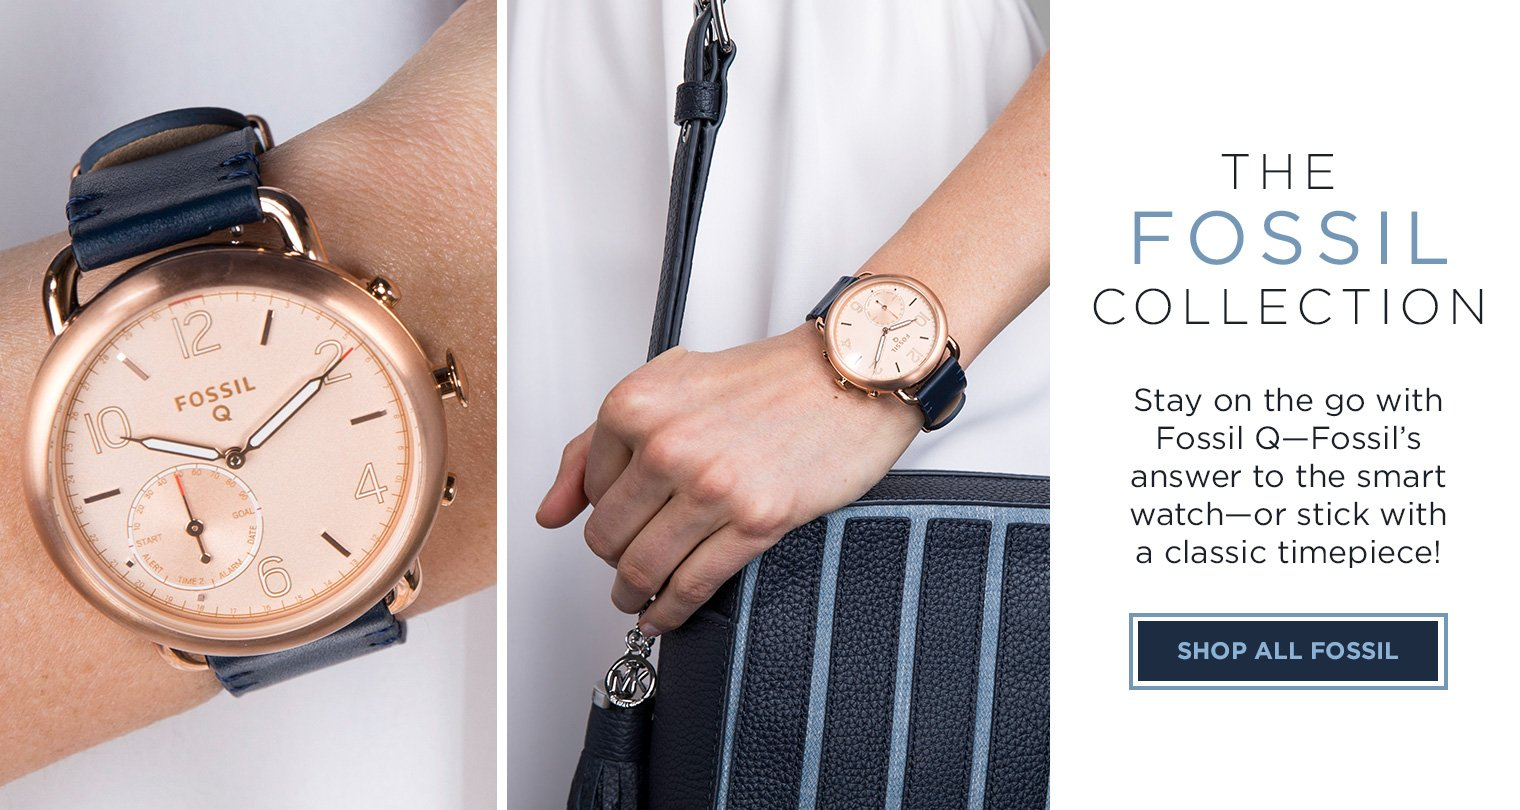 Stay on the go with Fossil Q-Fossil's answer to the smartwatch-or stick with a classic timepiece!